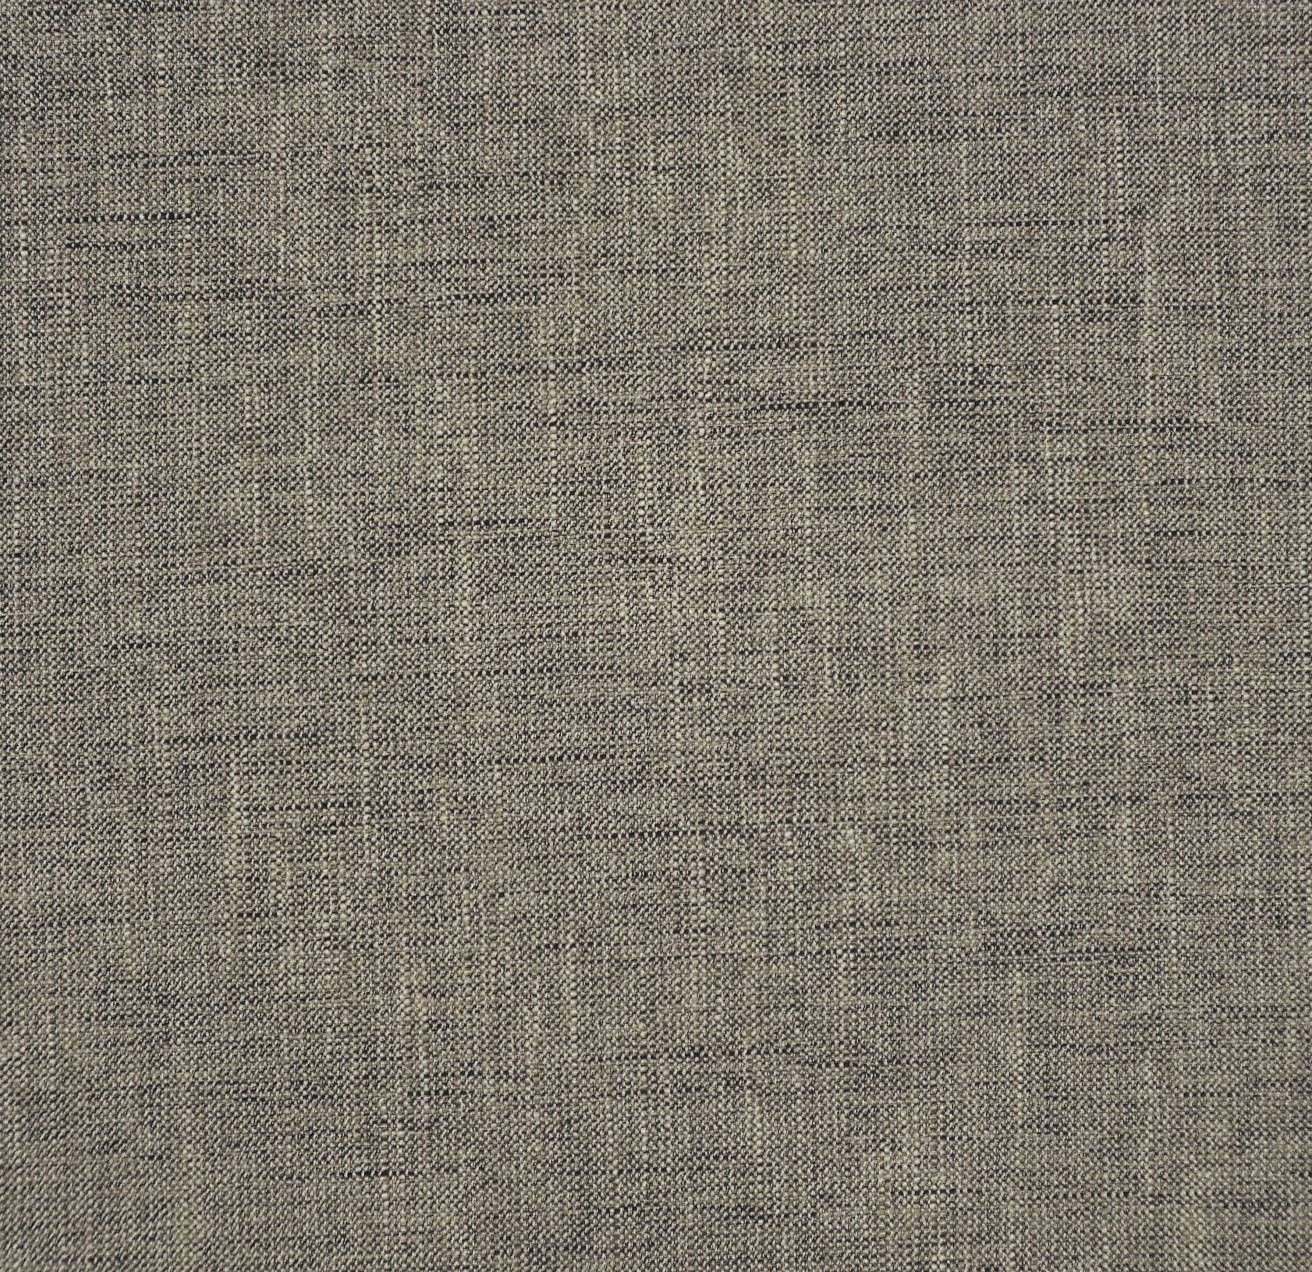 Grey Sofa Fabric Texture Small Corner Bed Textured Upholstery Massimo Linen By Charles